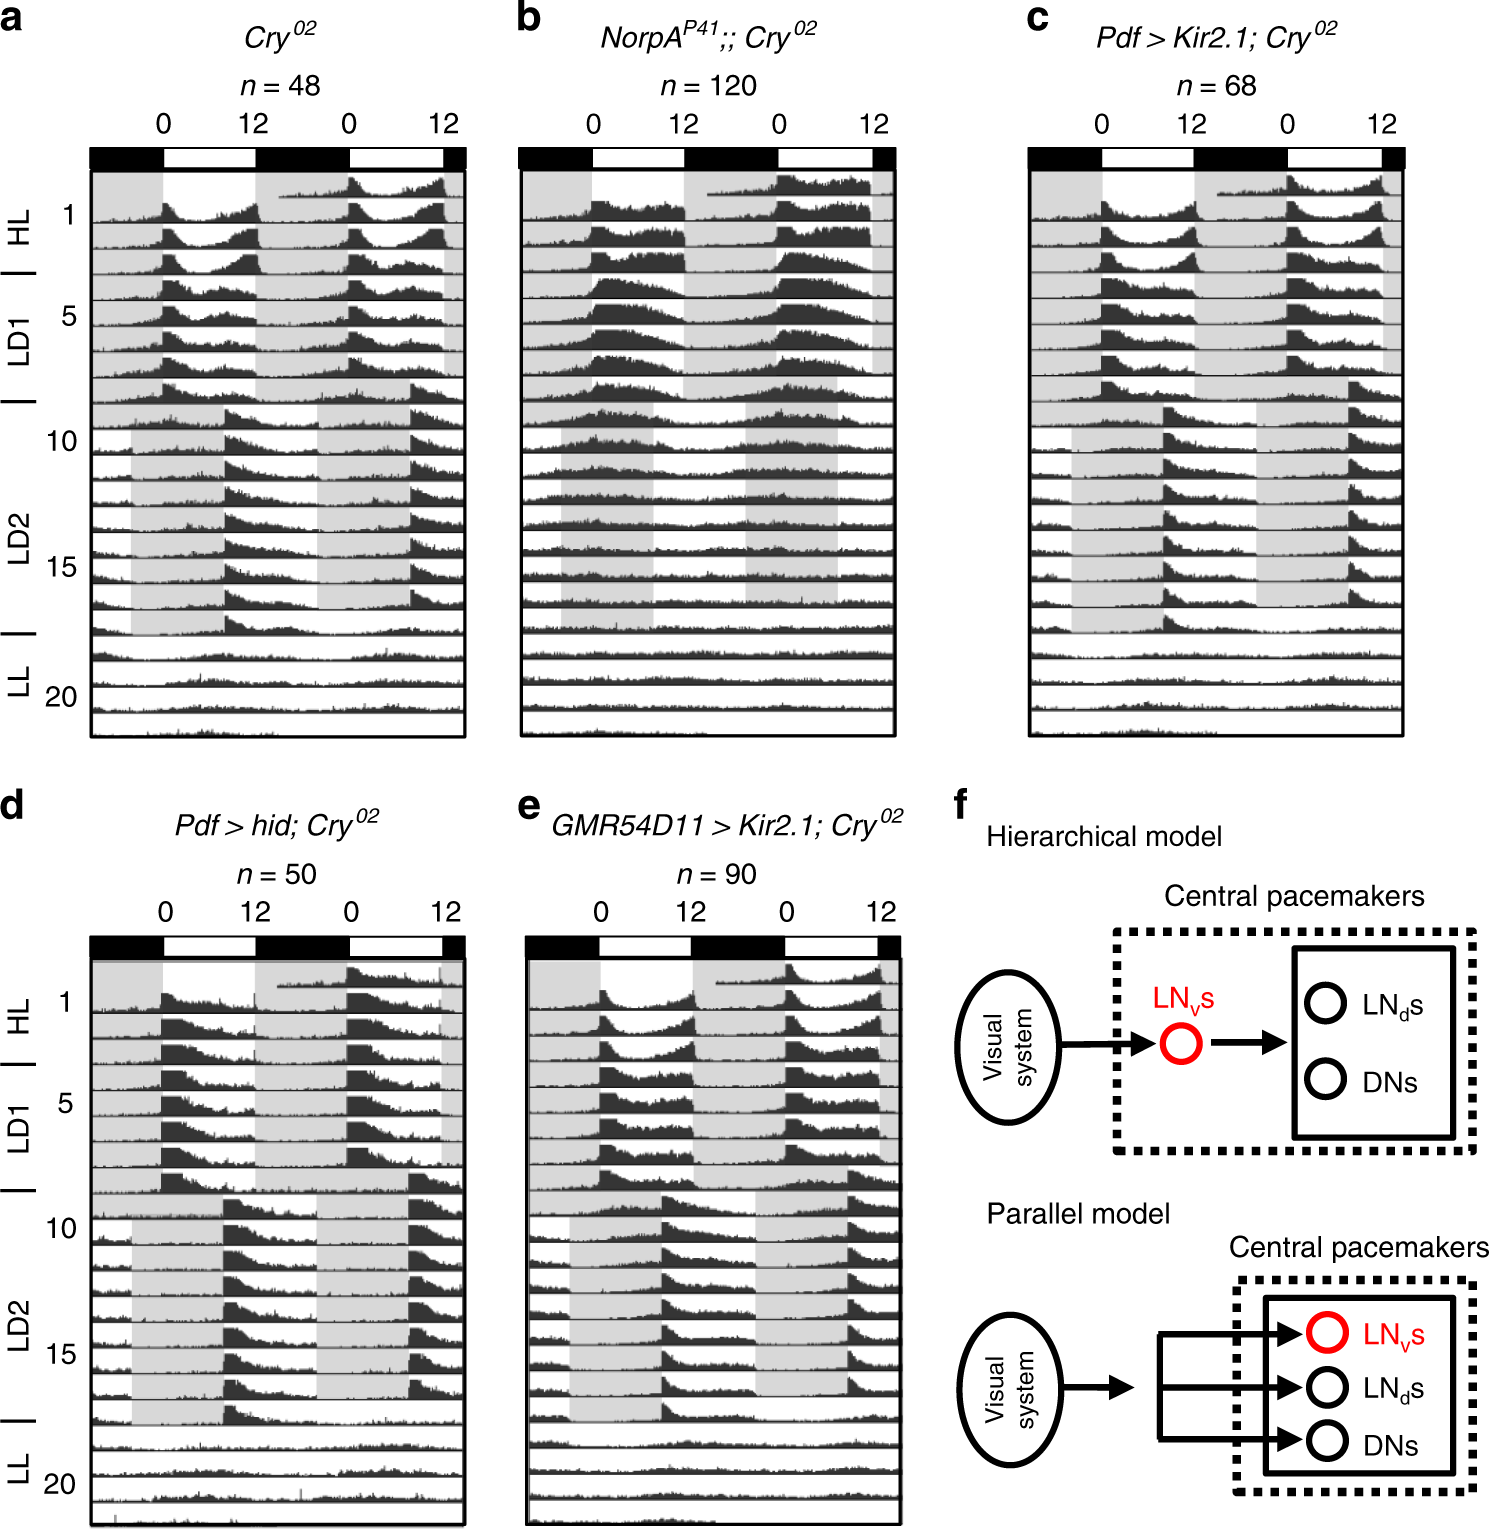 Hub Organized Parallel Circuits Of Central Circadian Pacemaker Voltage Figure 3 38 Comparison In A Circuit Neurons For Visual Photoentrainment Drosophila Nature Communications